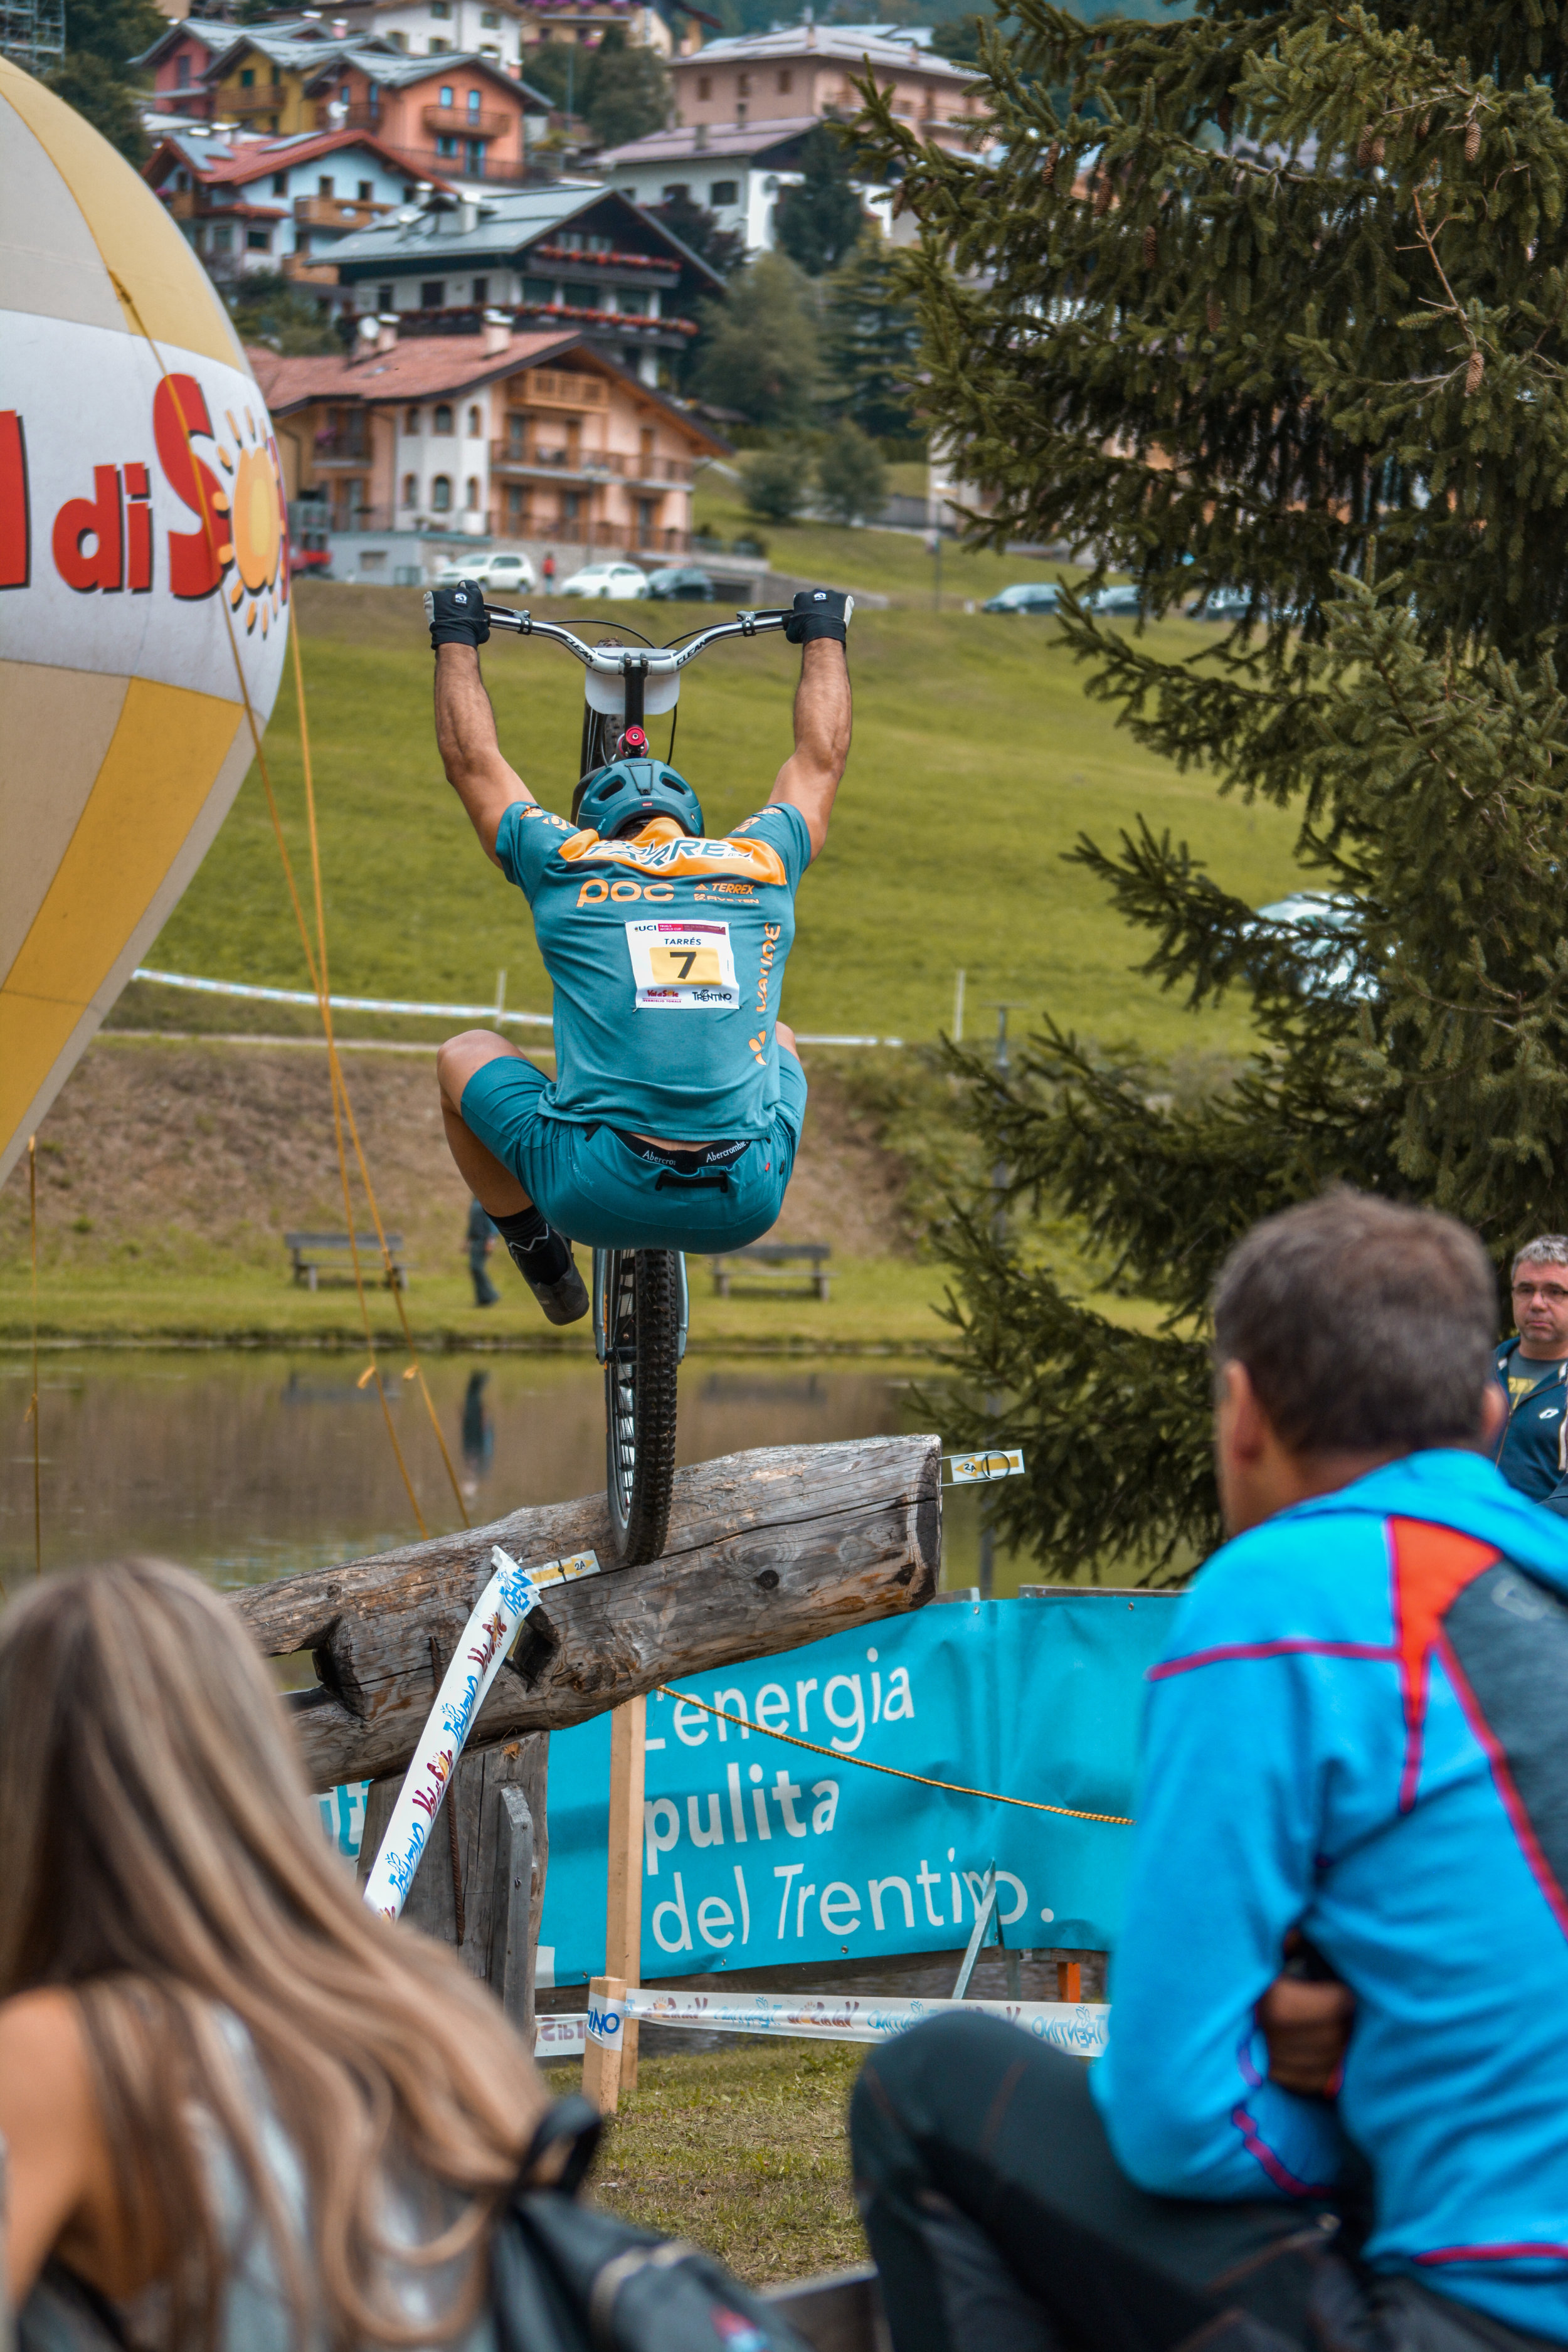 pol_tarres_blog_uci_world_cup_val_di_sole_2019-20.jpg